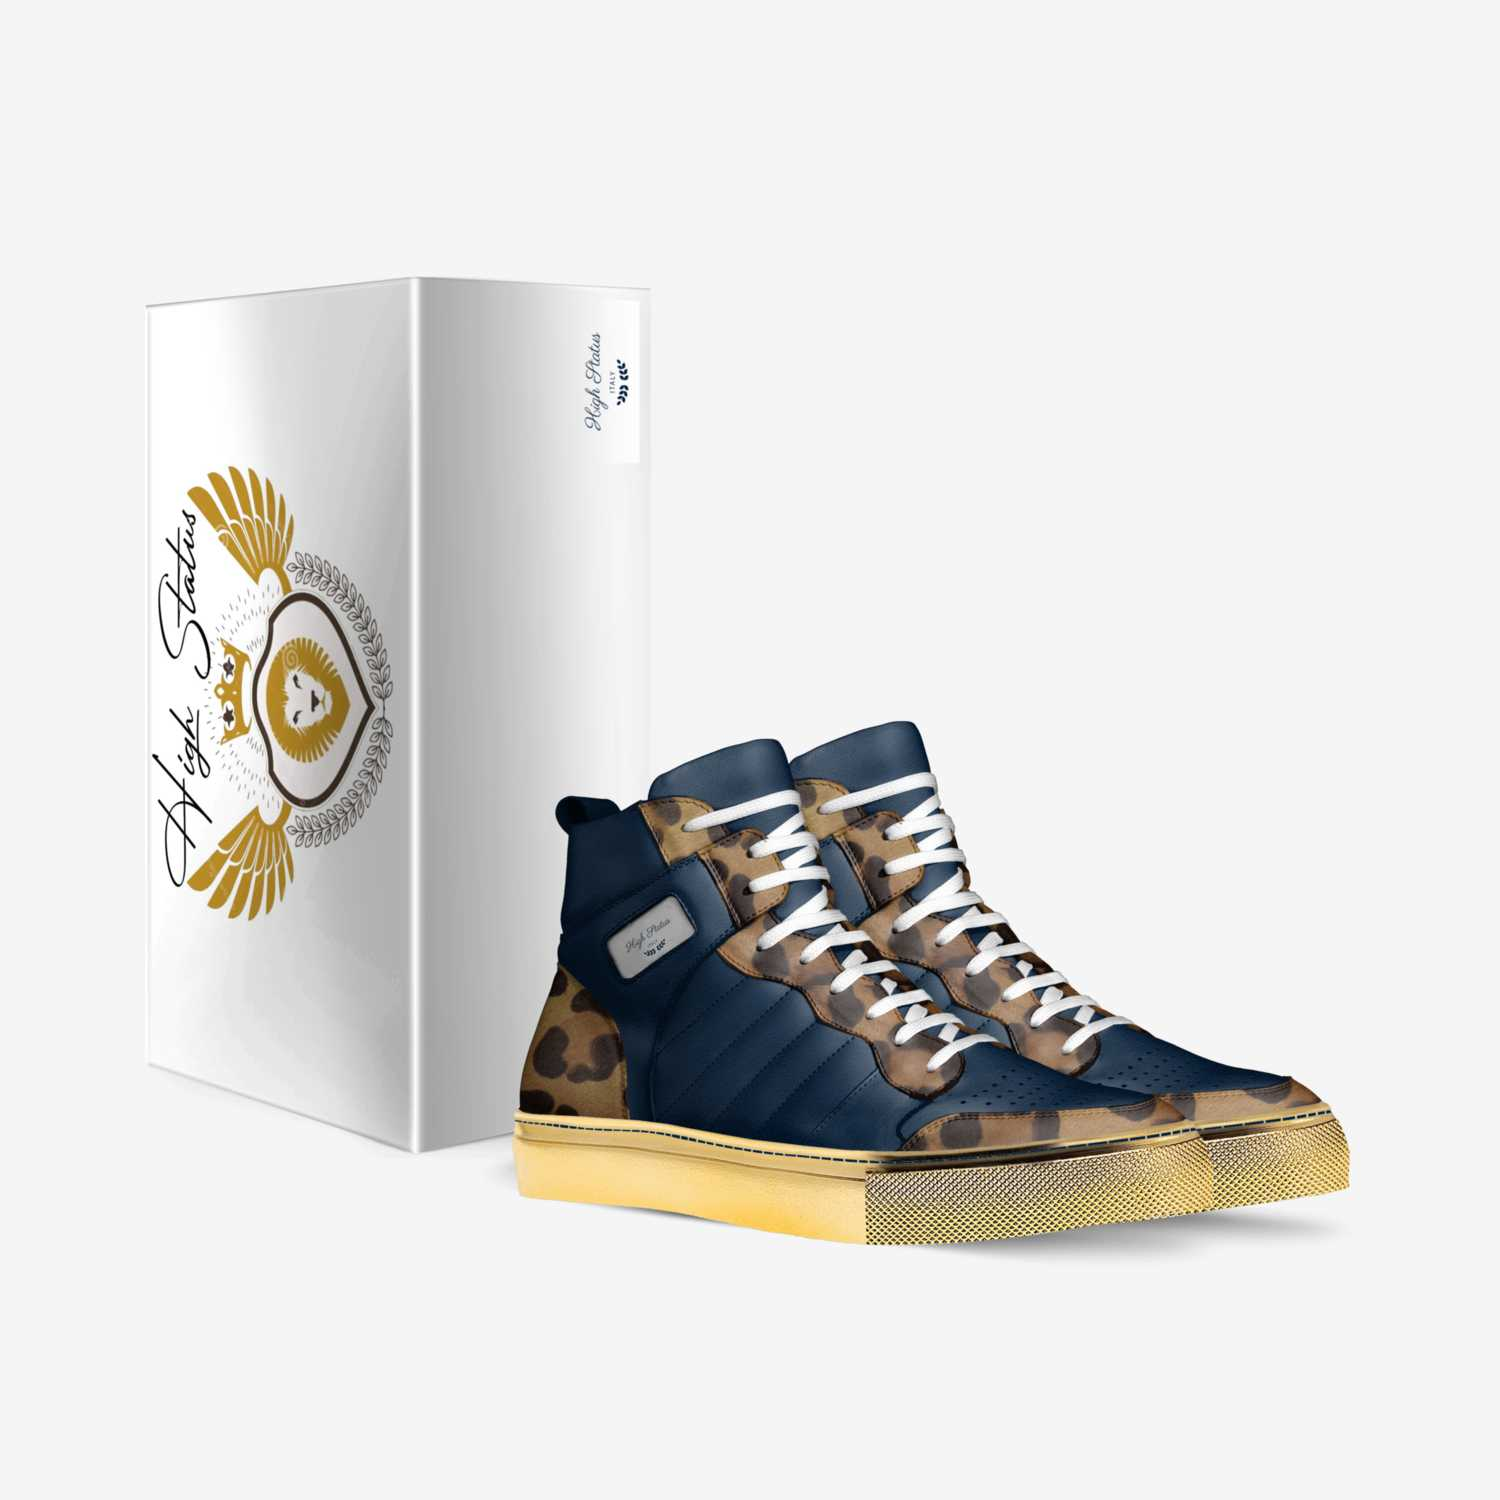 High Status custom made in Italy shoes by Ernest Ruffin | Box view